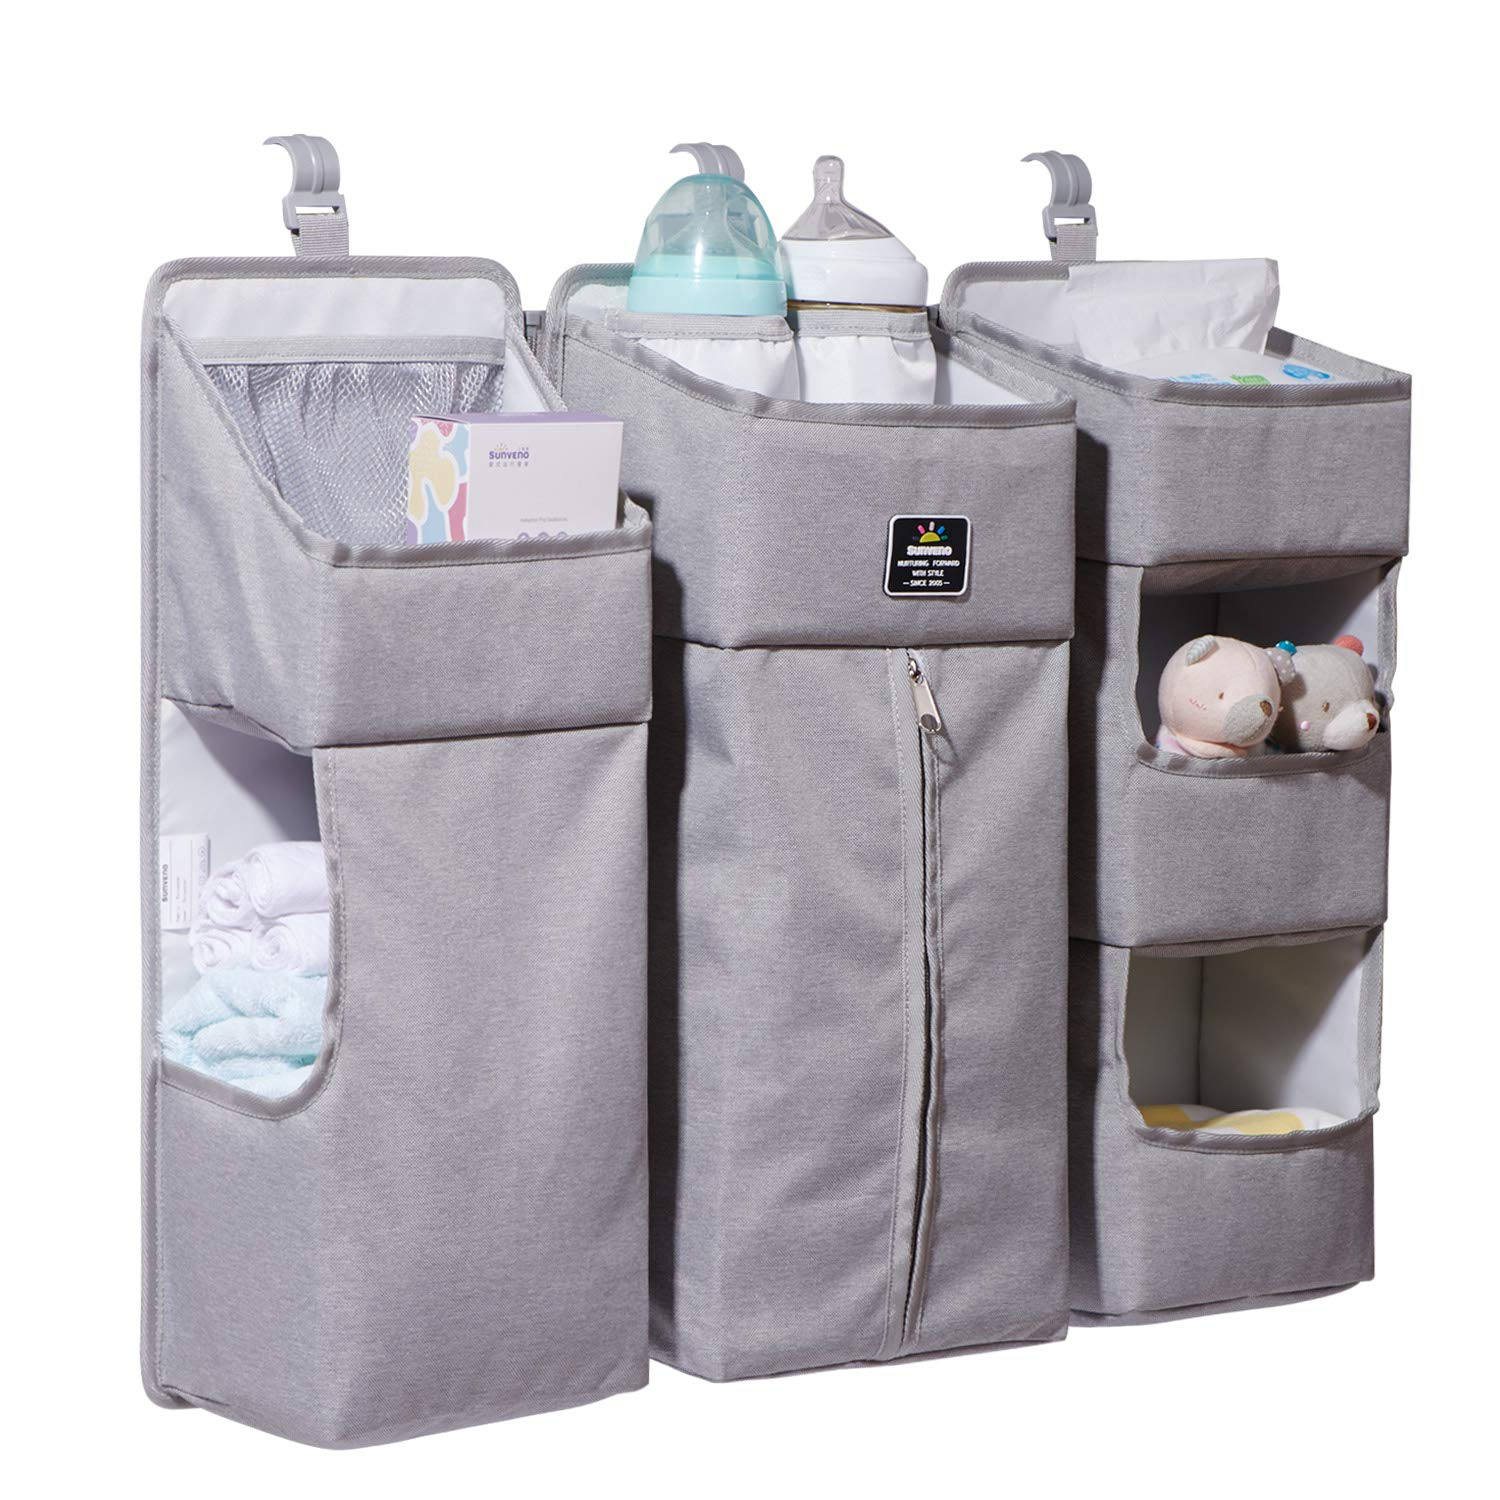 Crib Storage Hanging Bag Washable Baby Nursery Organizer Bedside Caddy Portable Linen Double Bag Baby Bed Hanging Organizer